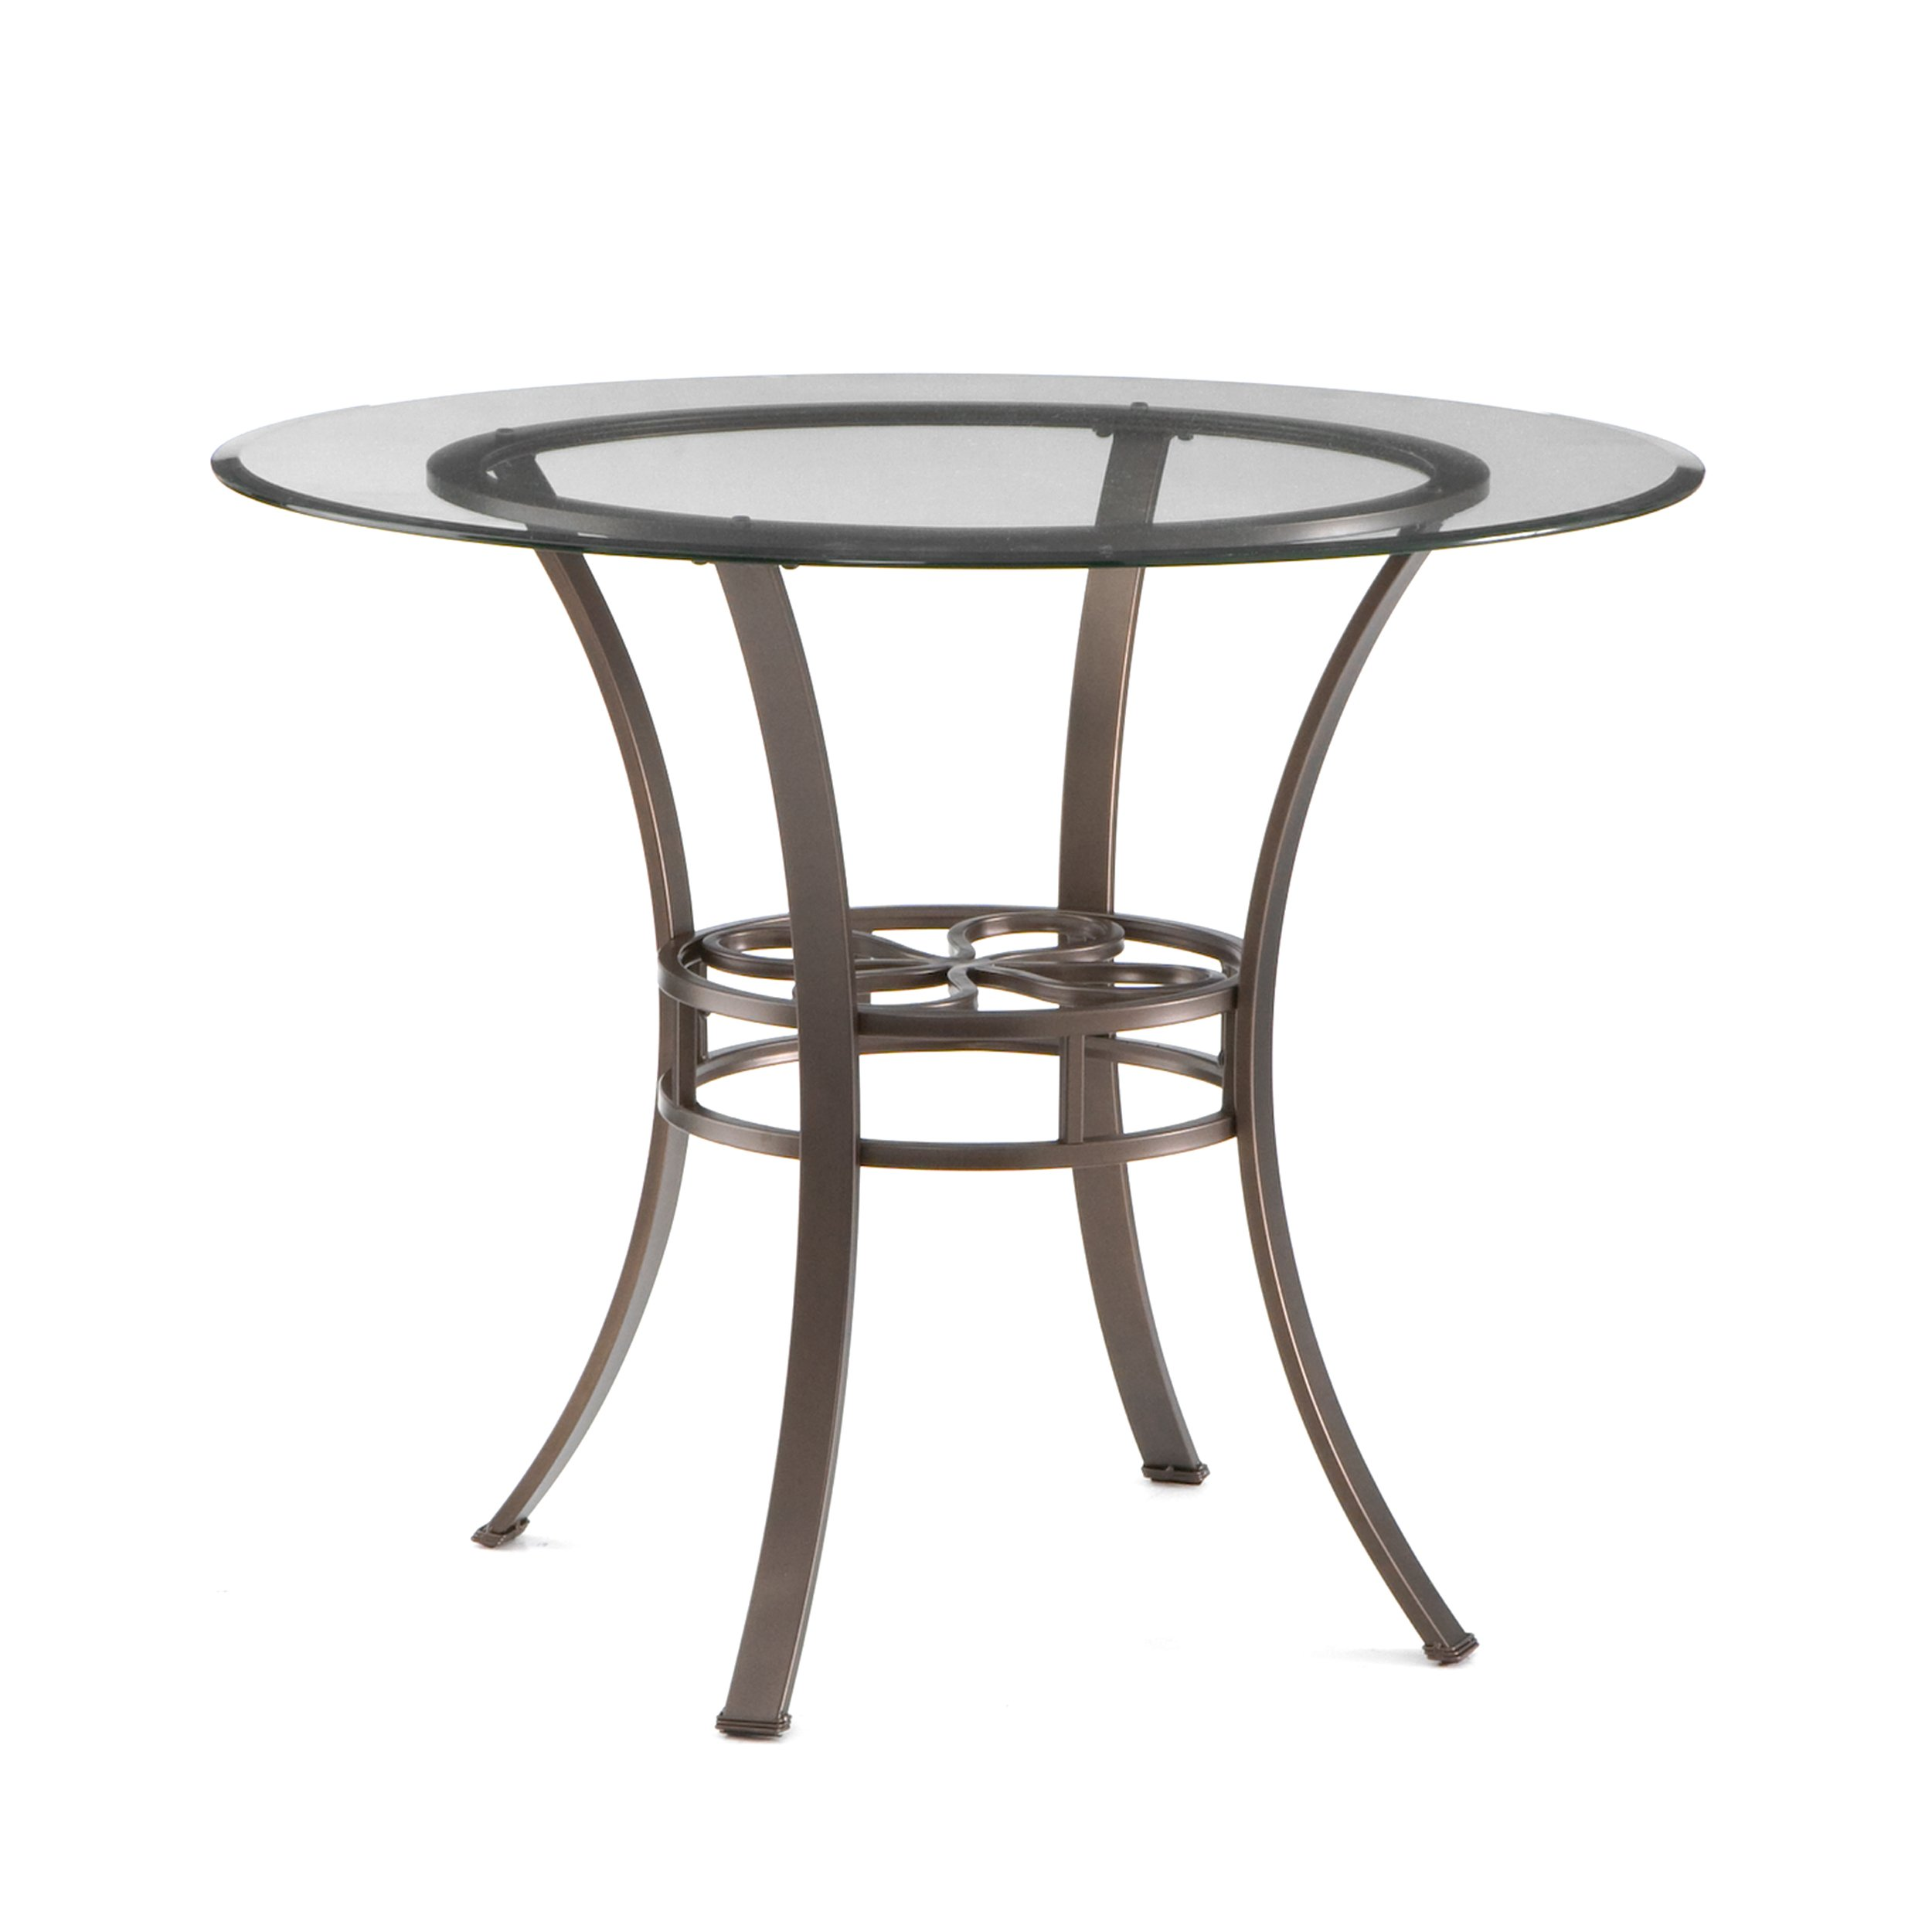 Southern Enterprises Lucianna Glass Top Dining Table, Dark Brown Finish by Southern Enterprises (Image #1)